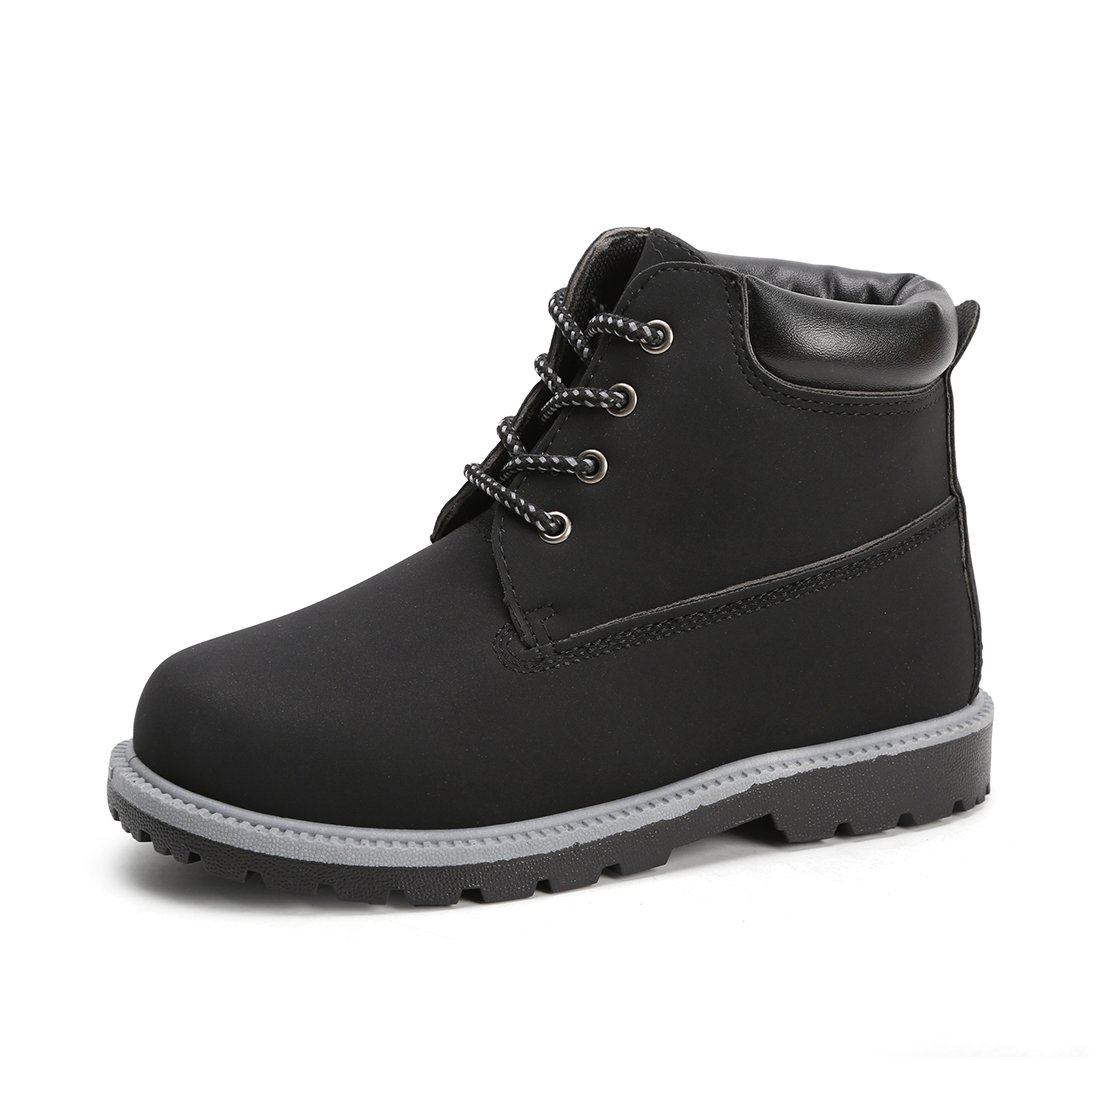 ویکالا · خرید  اصل اورجینال · خرید از آمازون · Hawkwell Kids Classic Ankle Boot(Toddler/Little Kid),Black PU,8 M US wekala · ویکالا